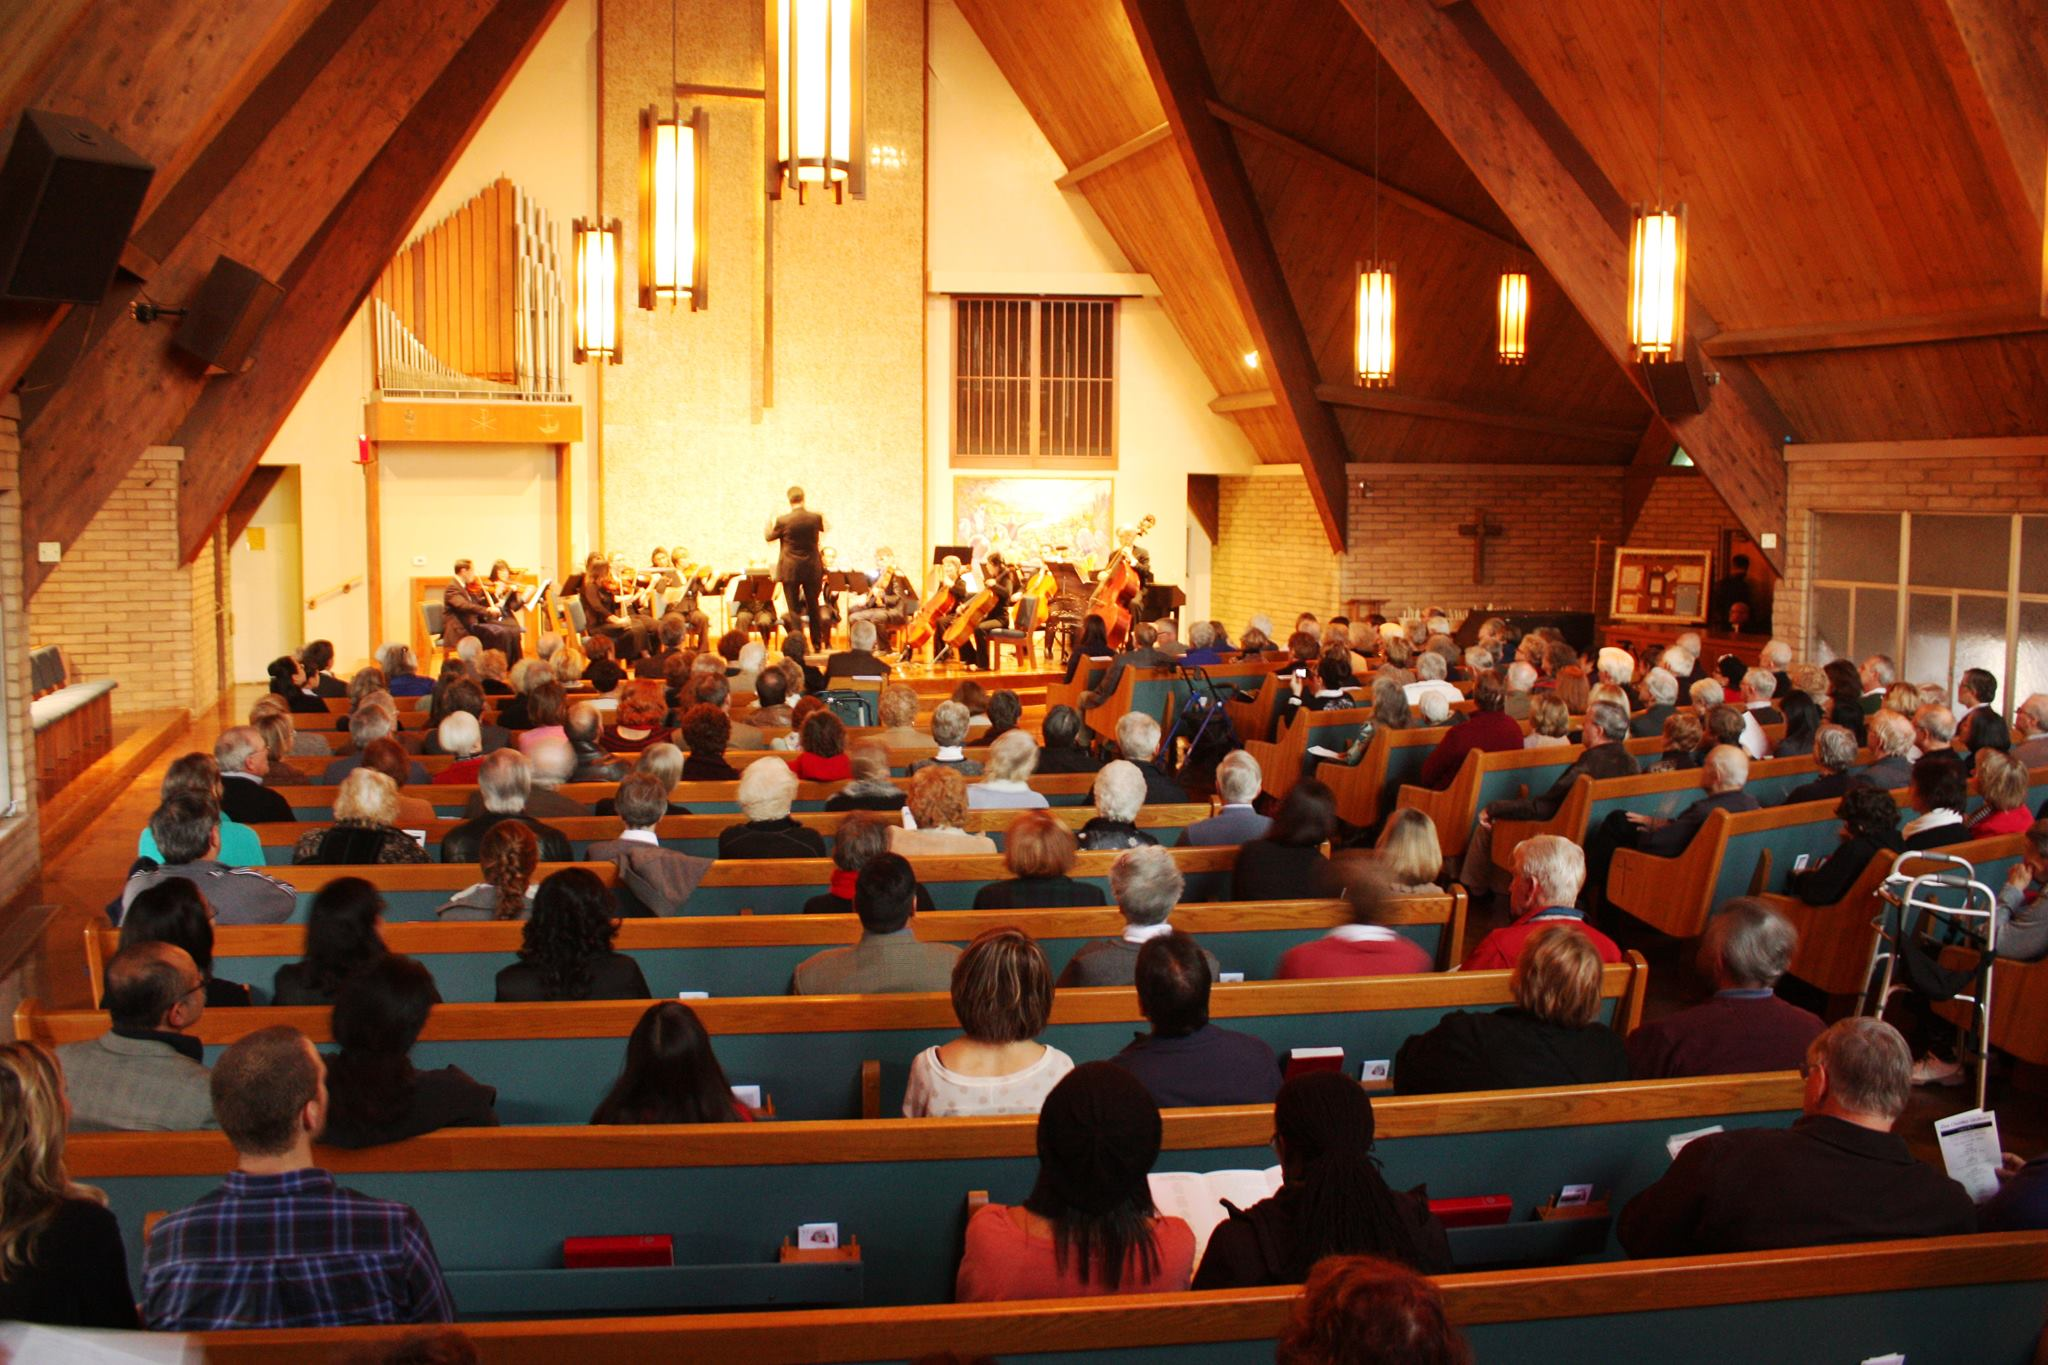 Zion chamber orchestra festival zion lutheran church of for Chambre orchestra